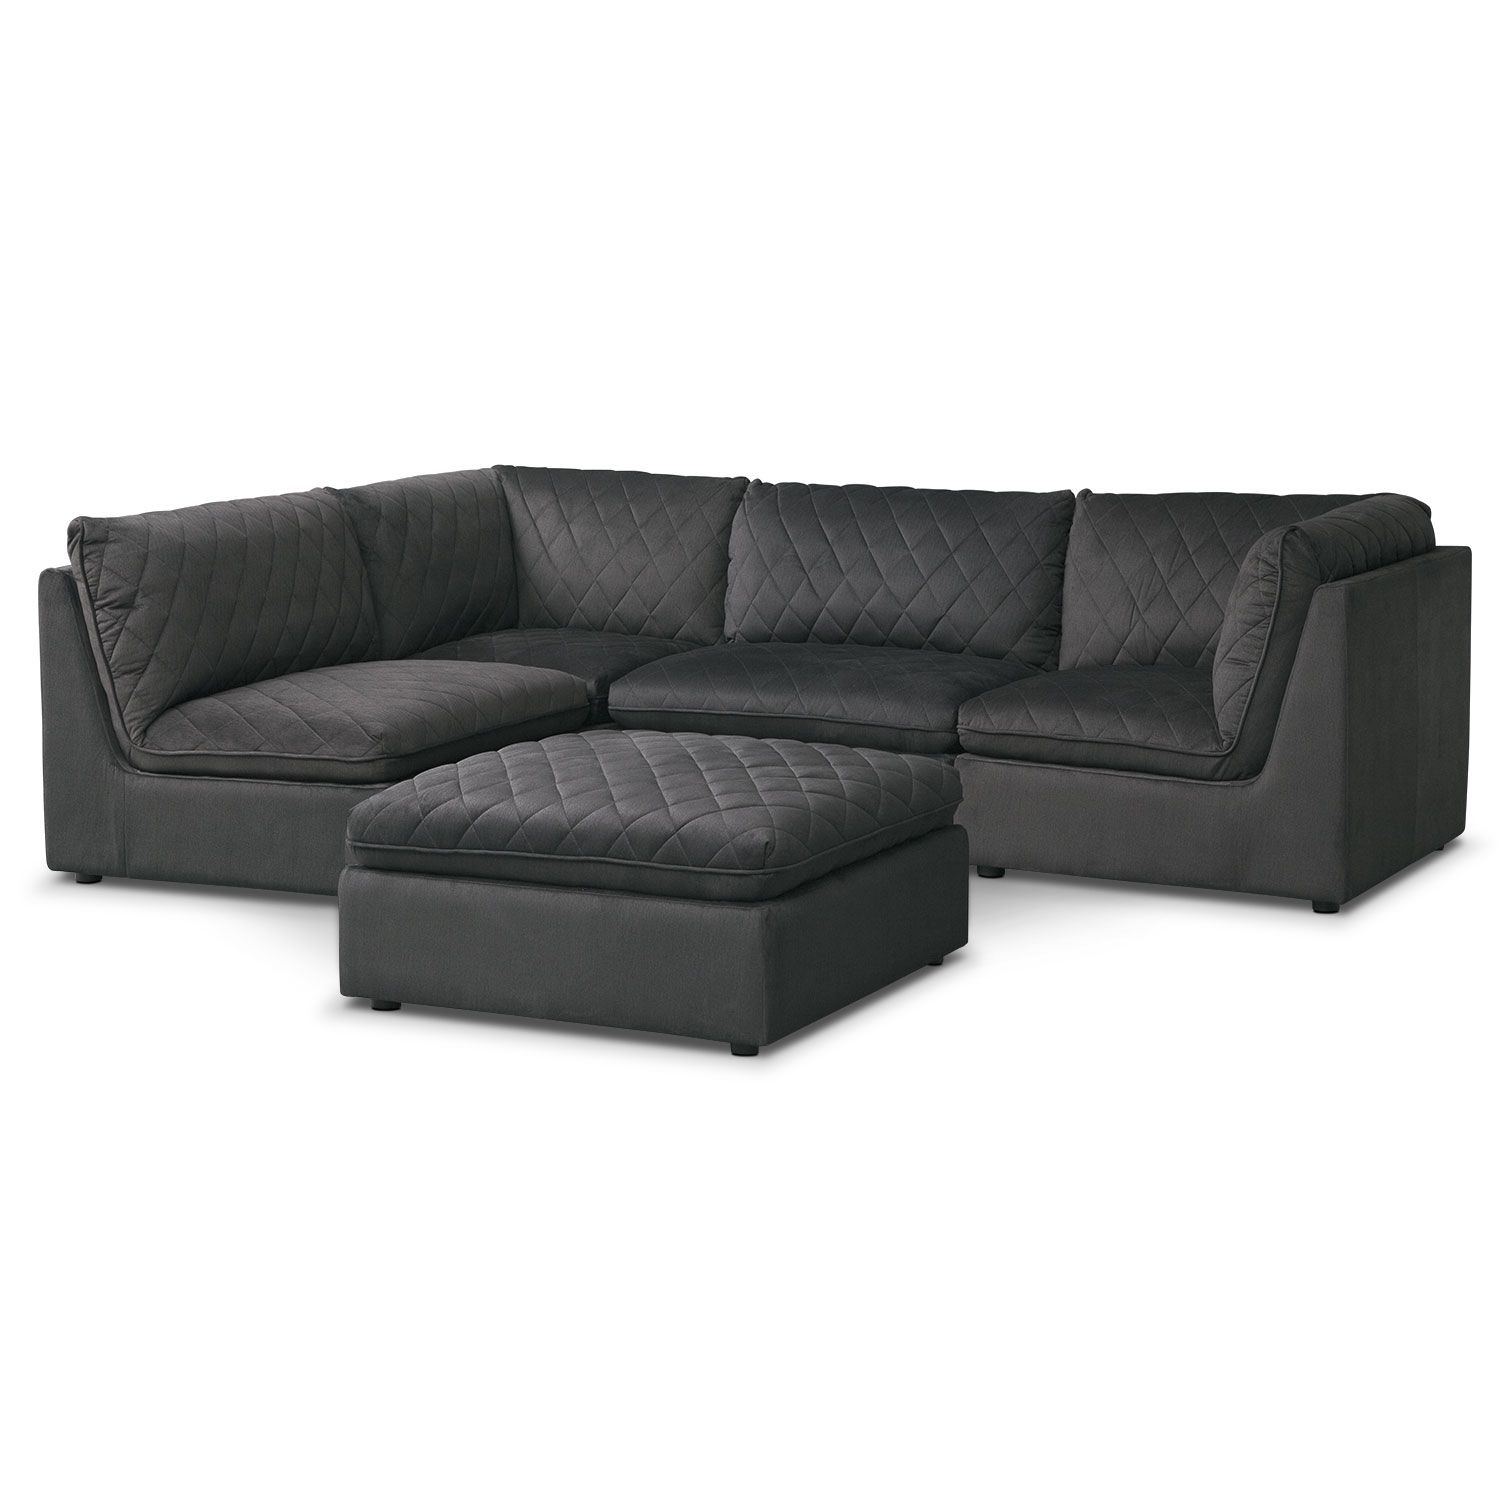 Outstanding Coco Charcoal 4 Piece Sectional With Cocktail Ottoman Pabps2019 Chair Design Images Pabps2019Com